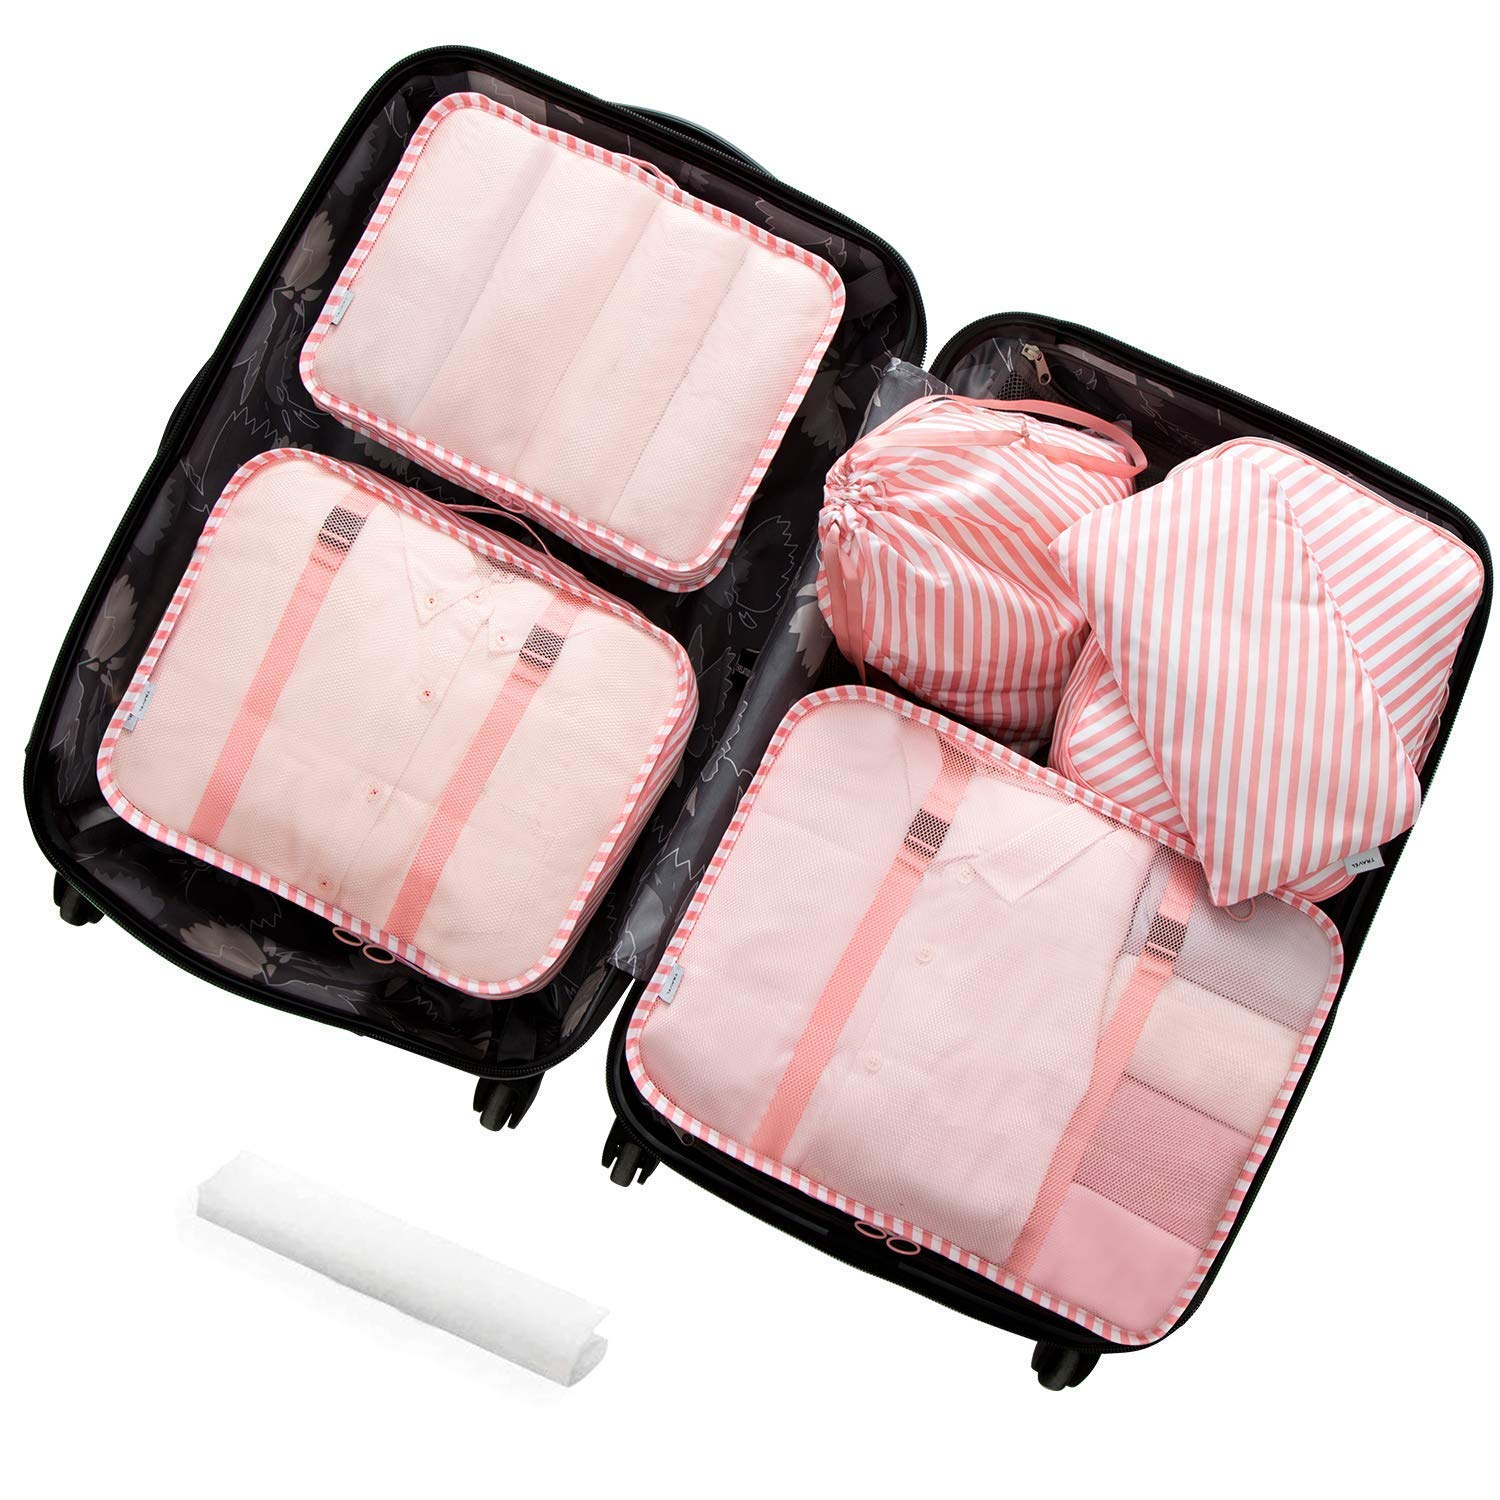 Packing Cubes - AKA your best friend